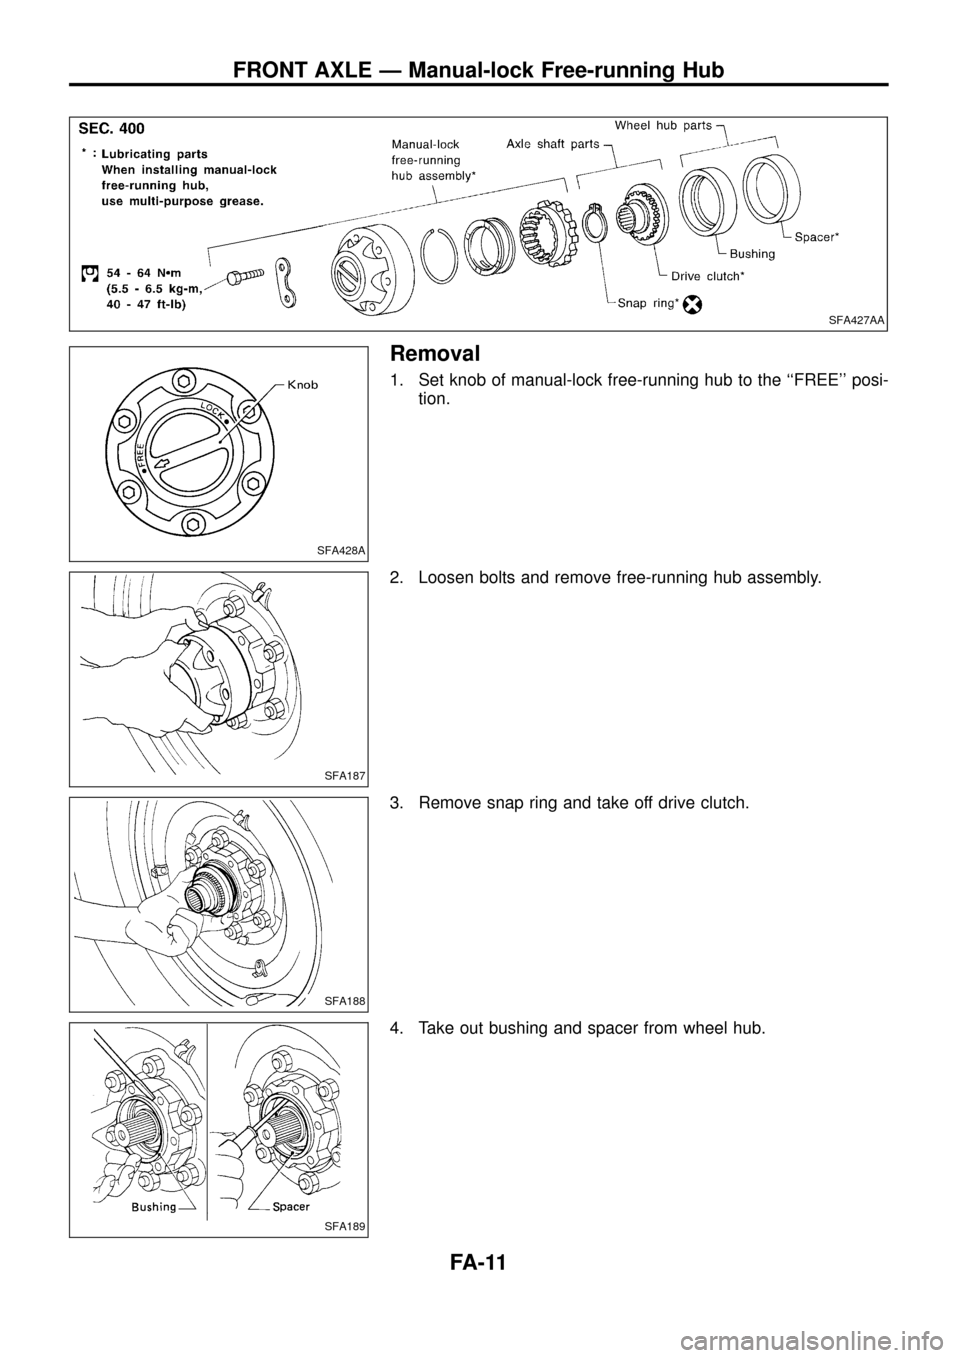 NISSAN PATROL 1998 Y61 / 5.G Front Suspension Workshop Manual